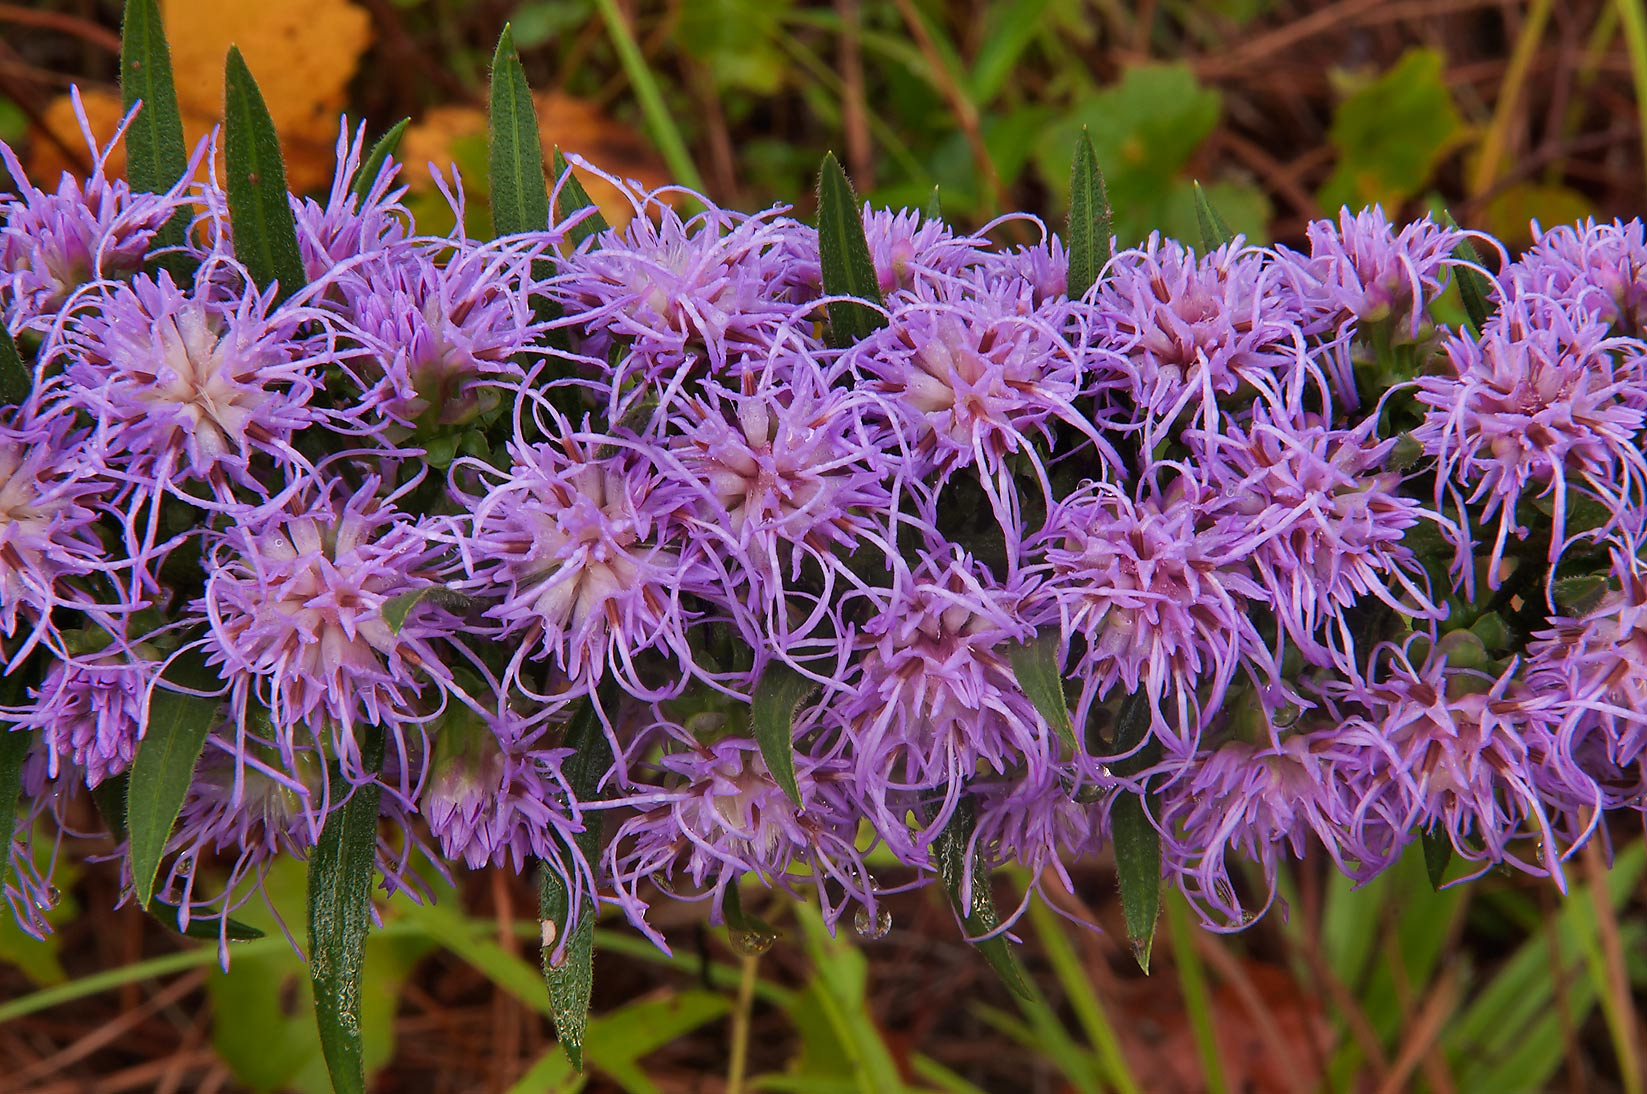 Gayfeather (Liatris) at Little Lake Creek Loop...National Forest. Richards, Texas